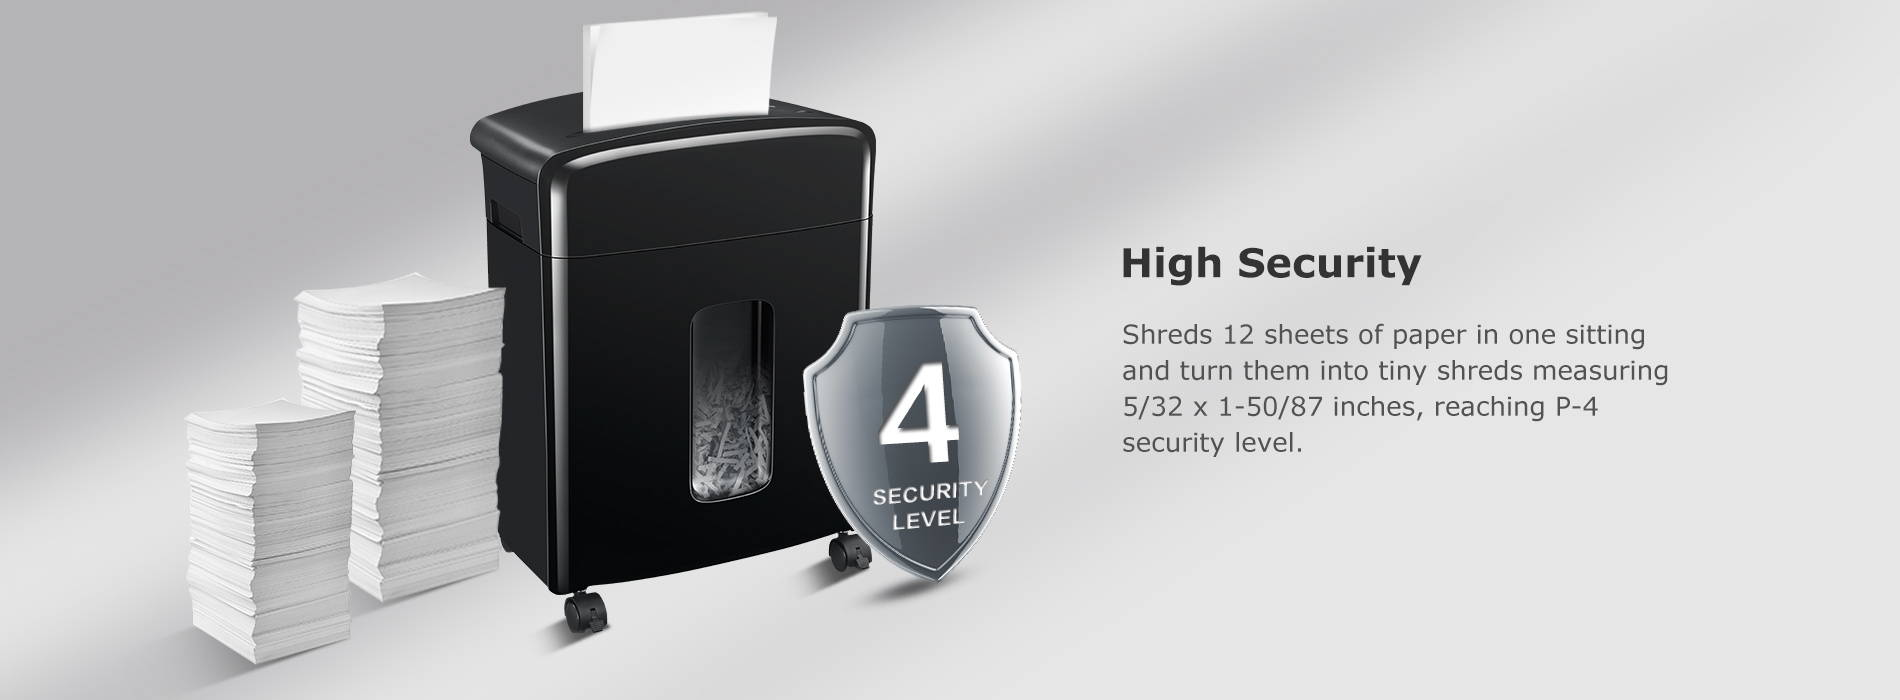 High Security Shreds 12 sheets of paper in one sitting and turn them into tiny shreds measuring 5/32 x 1-50/87 inches, reaching P-4 security level.